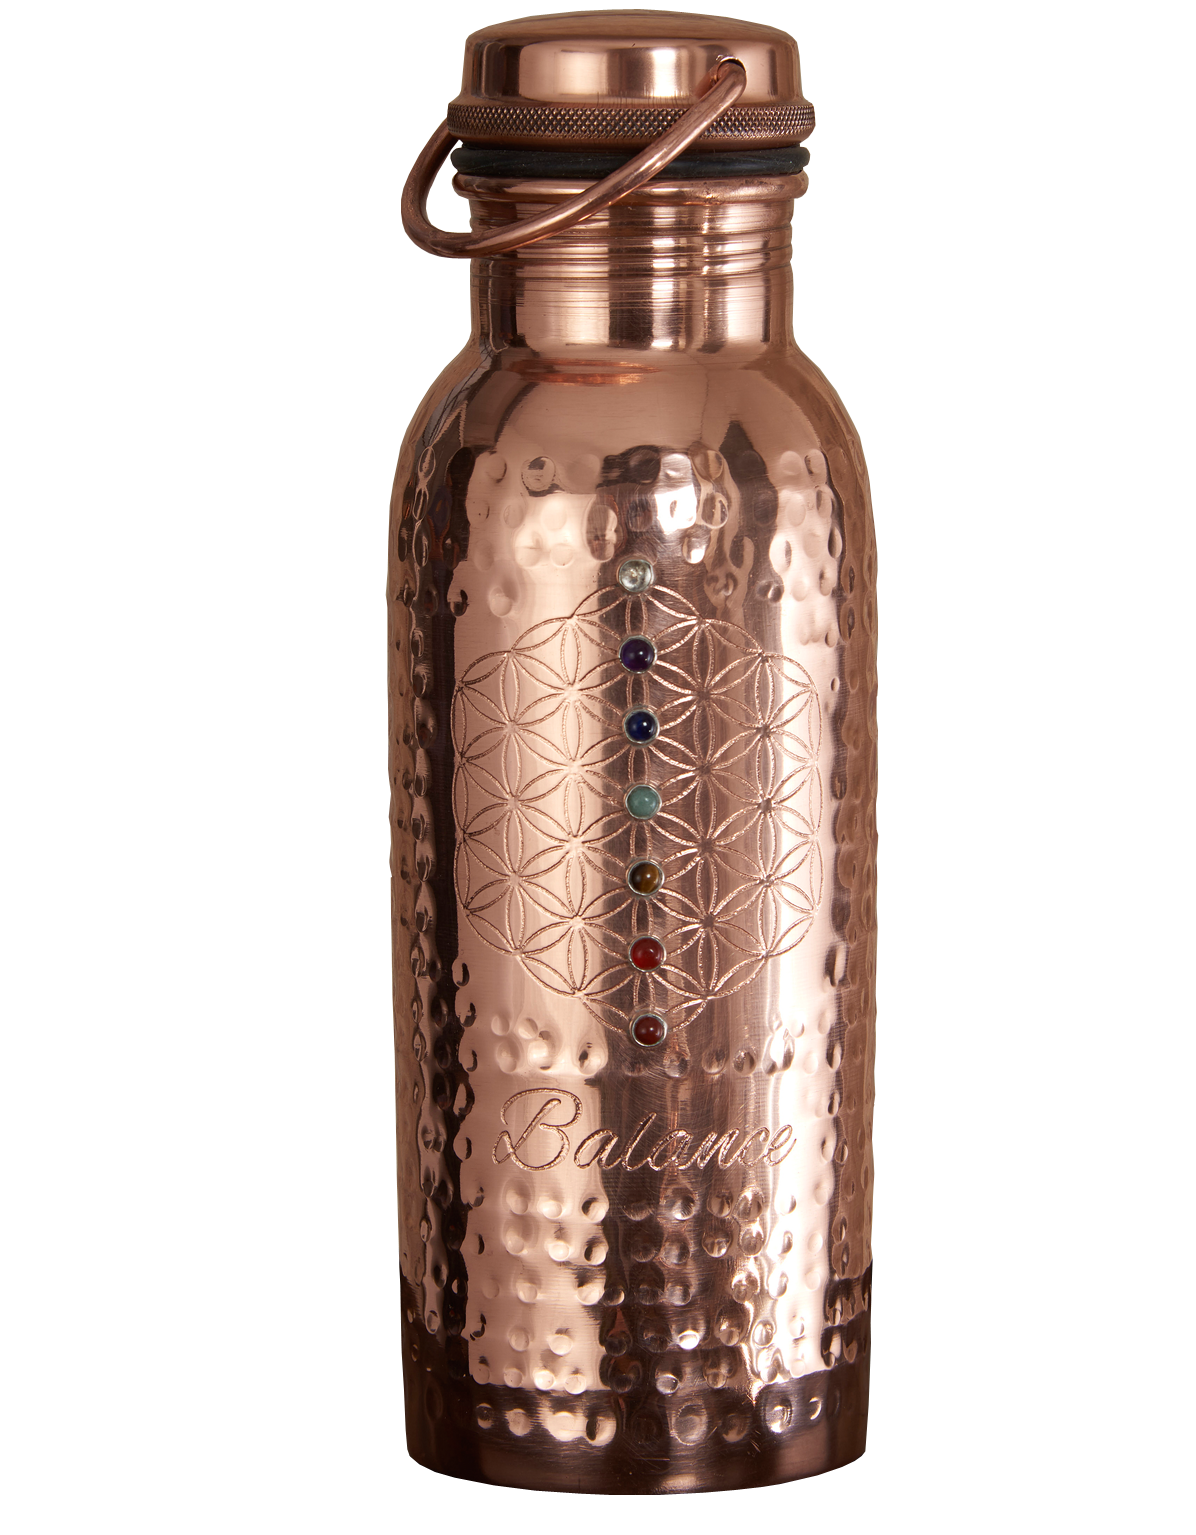 Ayurveda Wellness Copper Bottle Balance Mantra 7 Crystals